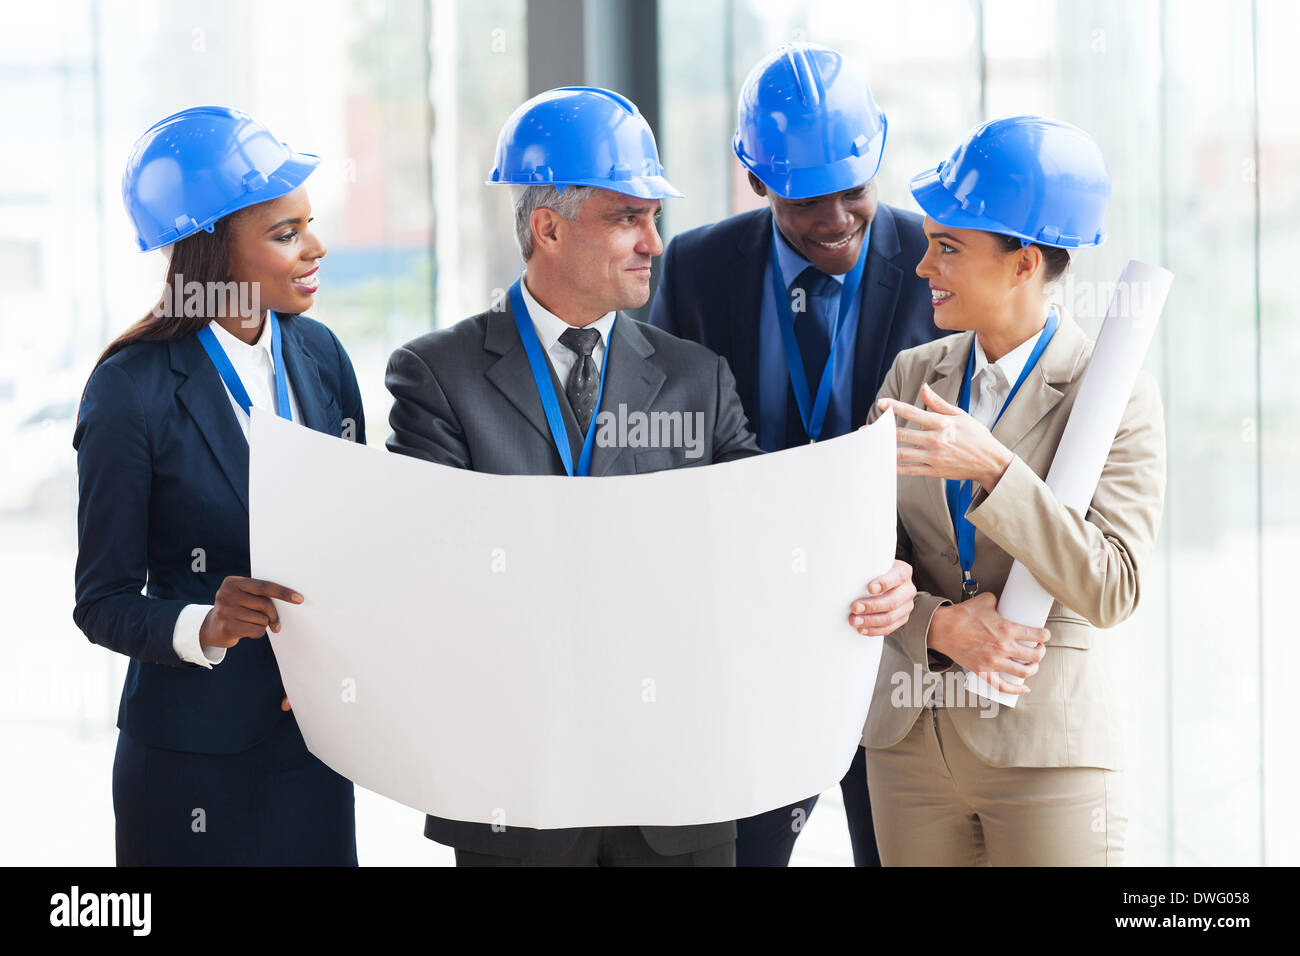 Stock Photo - team of successful architects interacting in office